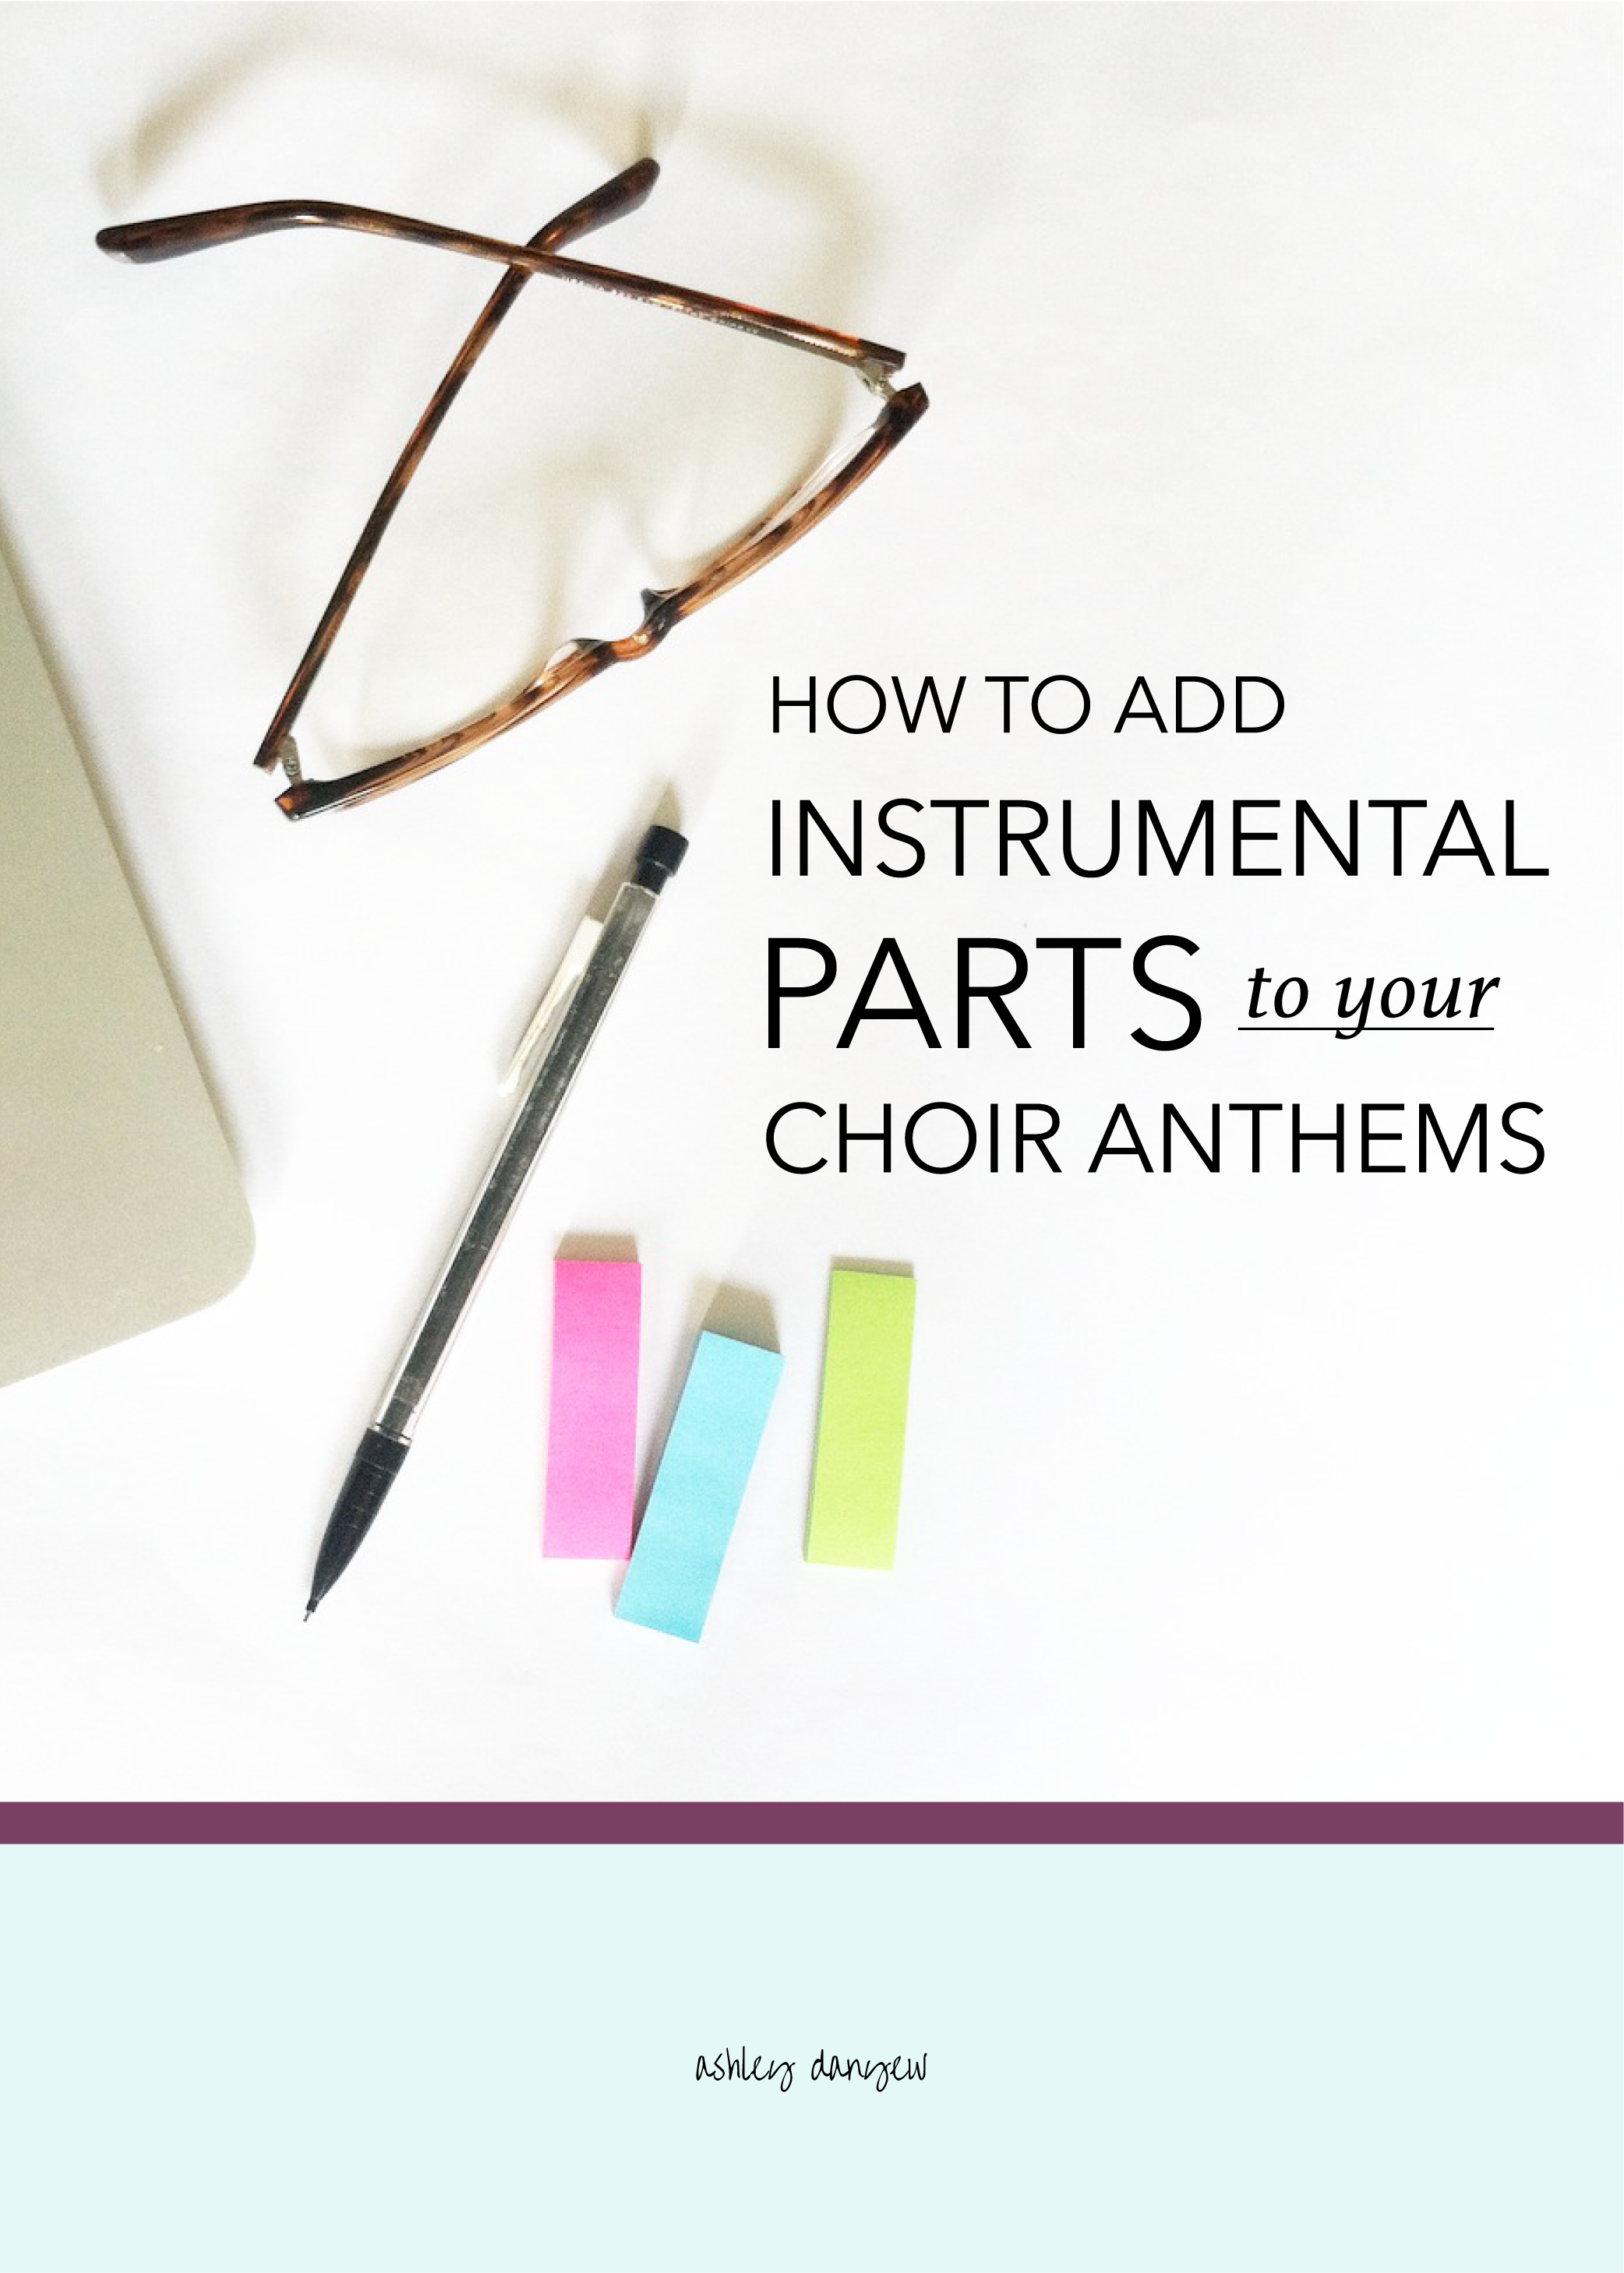 How to Add Instrumental Parts to Your Choir Anthems-13.png